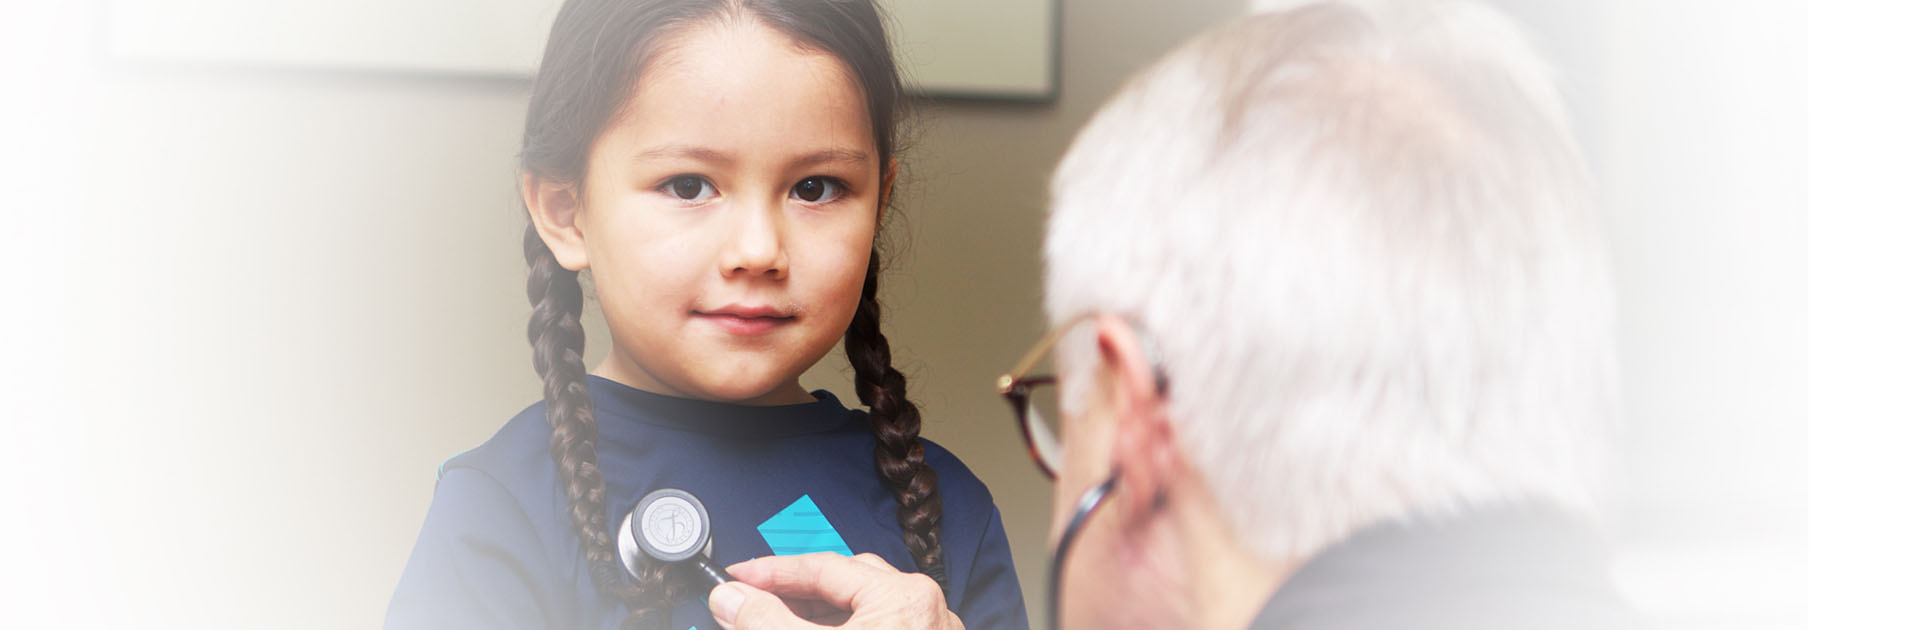 Image of young indigenous girl with doctor holding stethoscope to her heart.